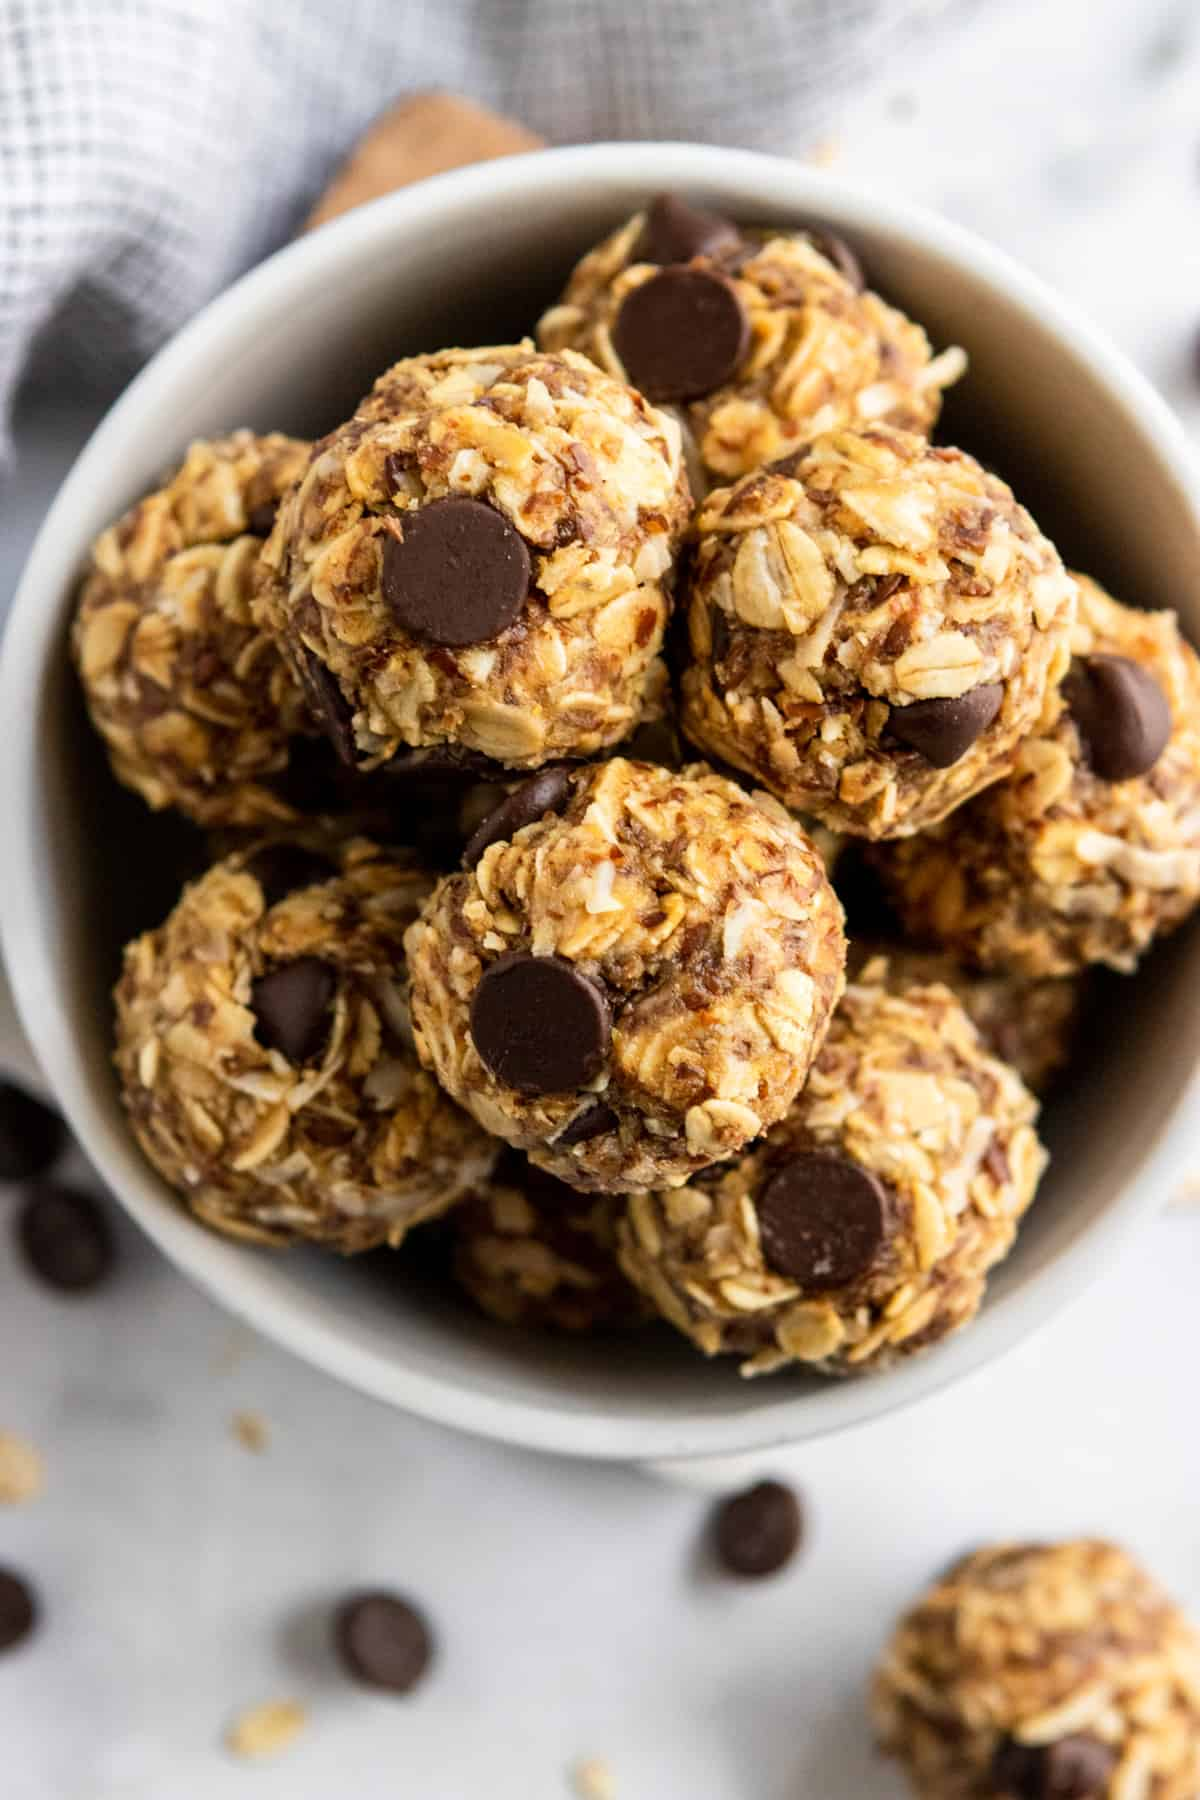 Peanut butter oatmeal balls with chocolate chips in bowl.